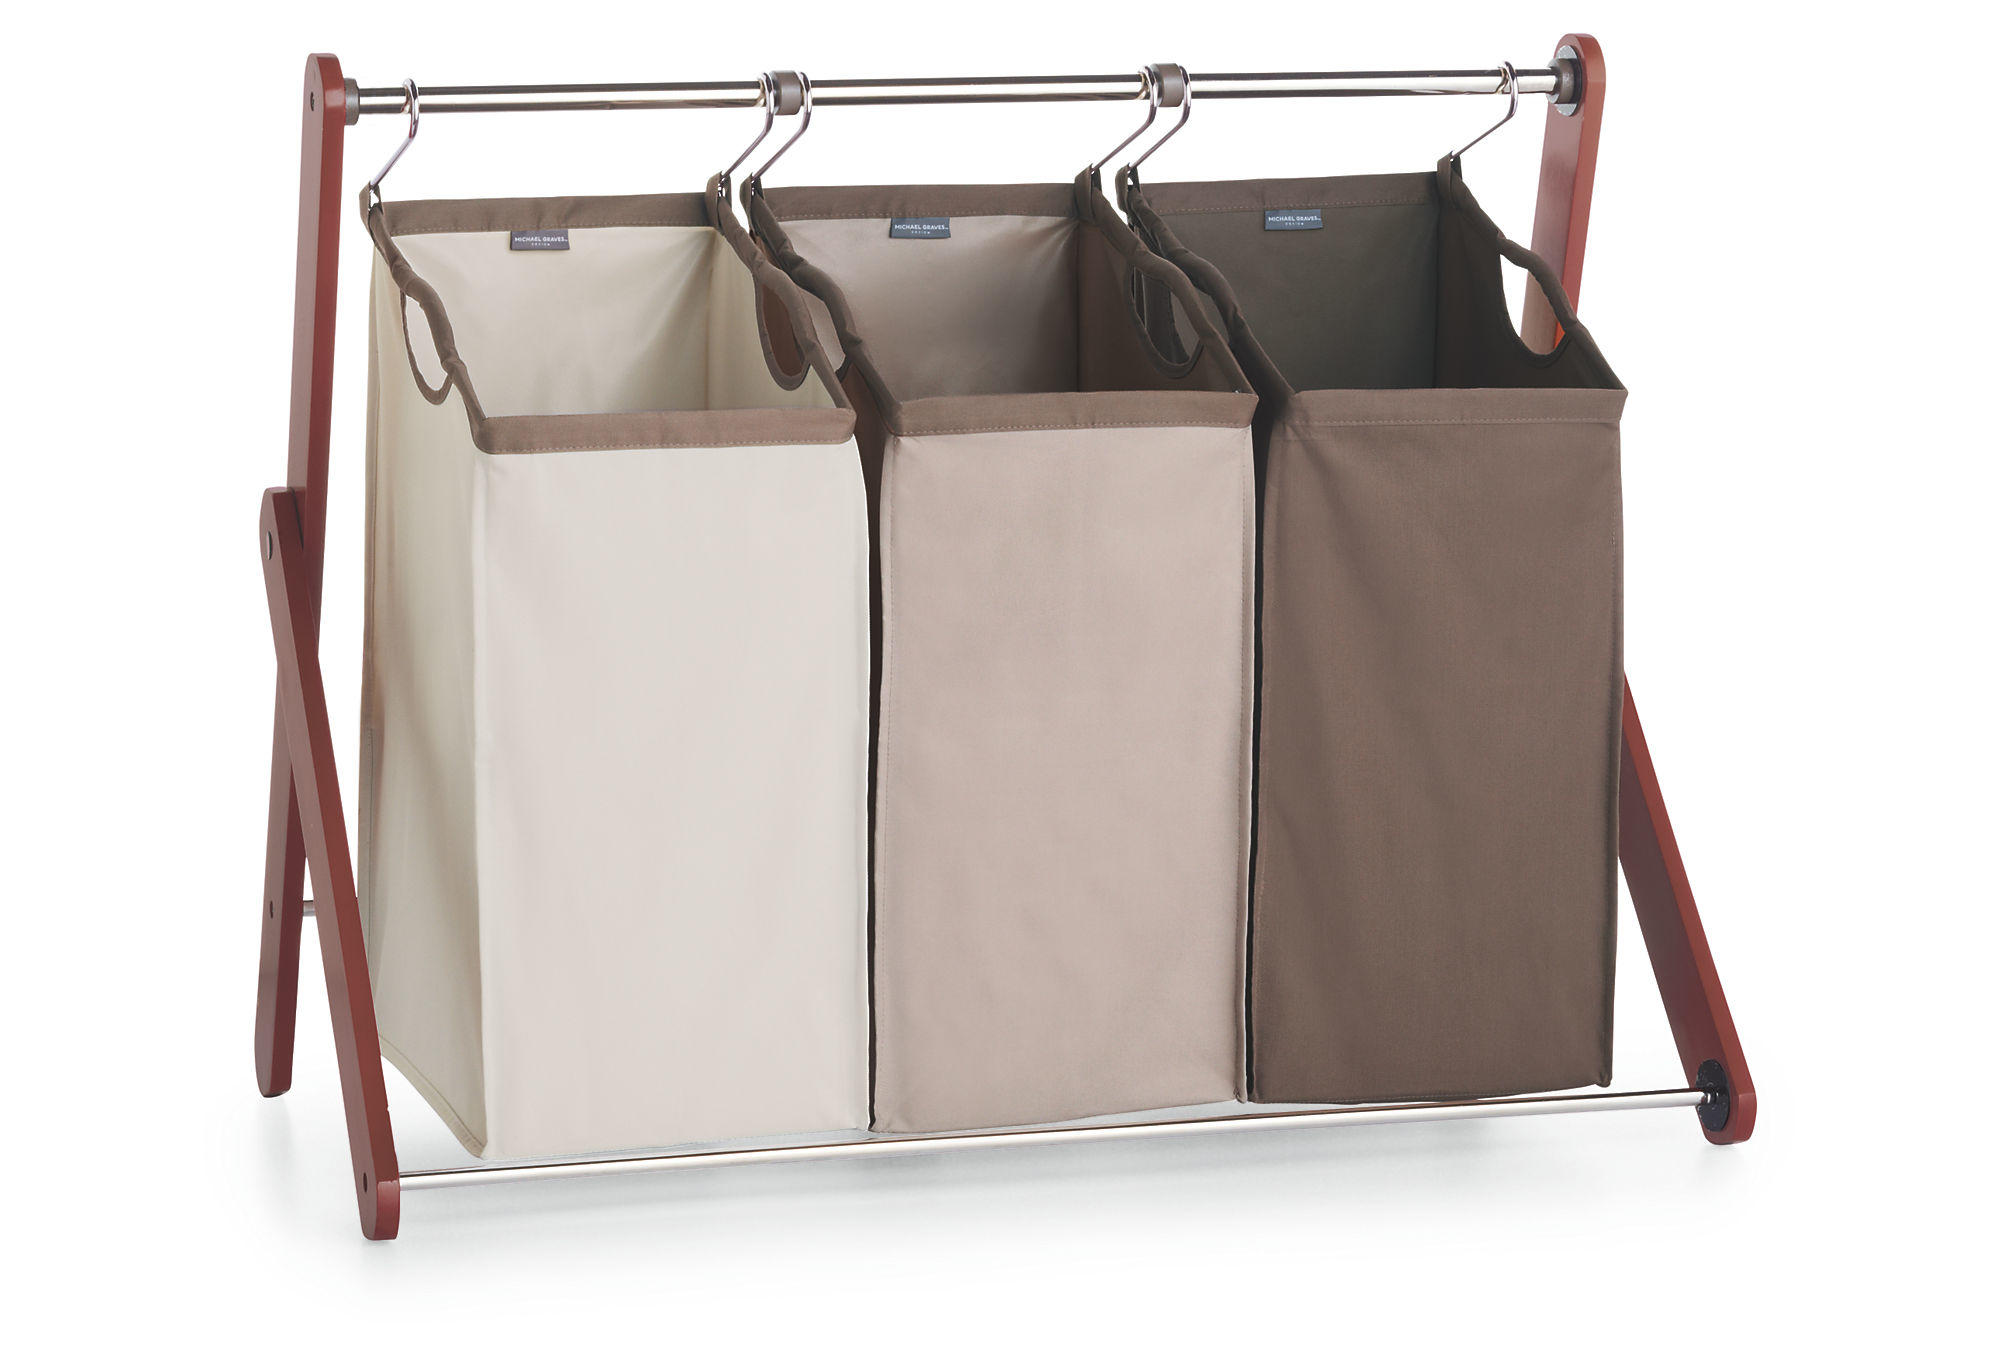 Triple Laundry Sorter Laundry Hampers From One Kings Lane